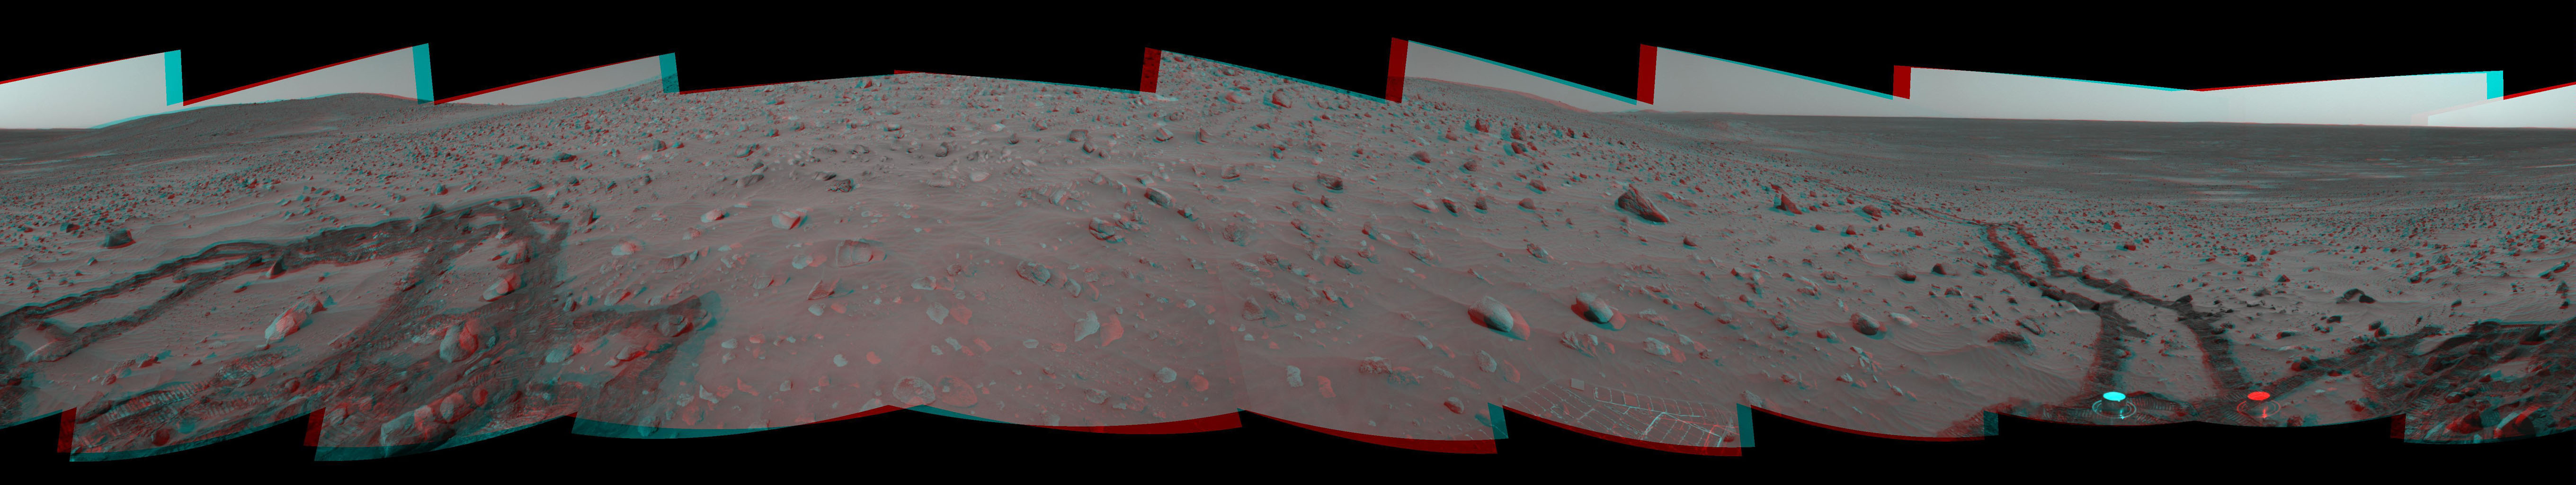 This 360-degree, stereo panorama of a section of the 'Columbia Hills' shows meandering, crisscrossing wheel tracks that NASA's Mars Exploration Rover Spirit left behind. 3D glasses are necessary to view this image.